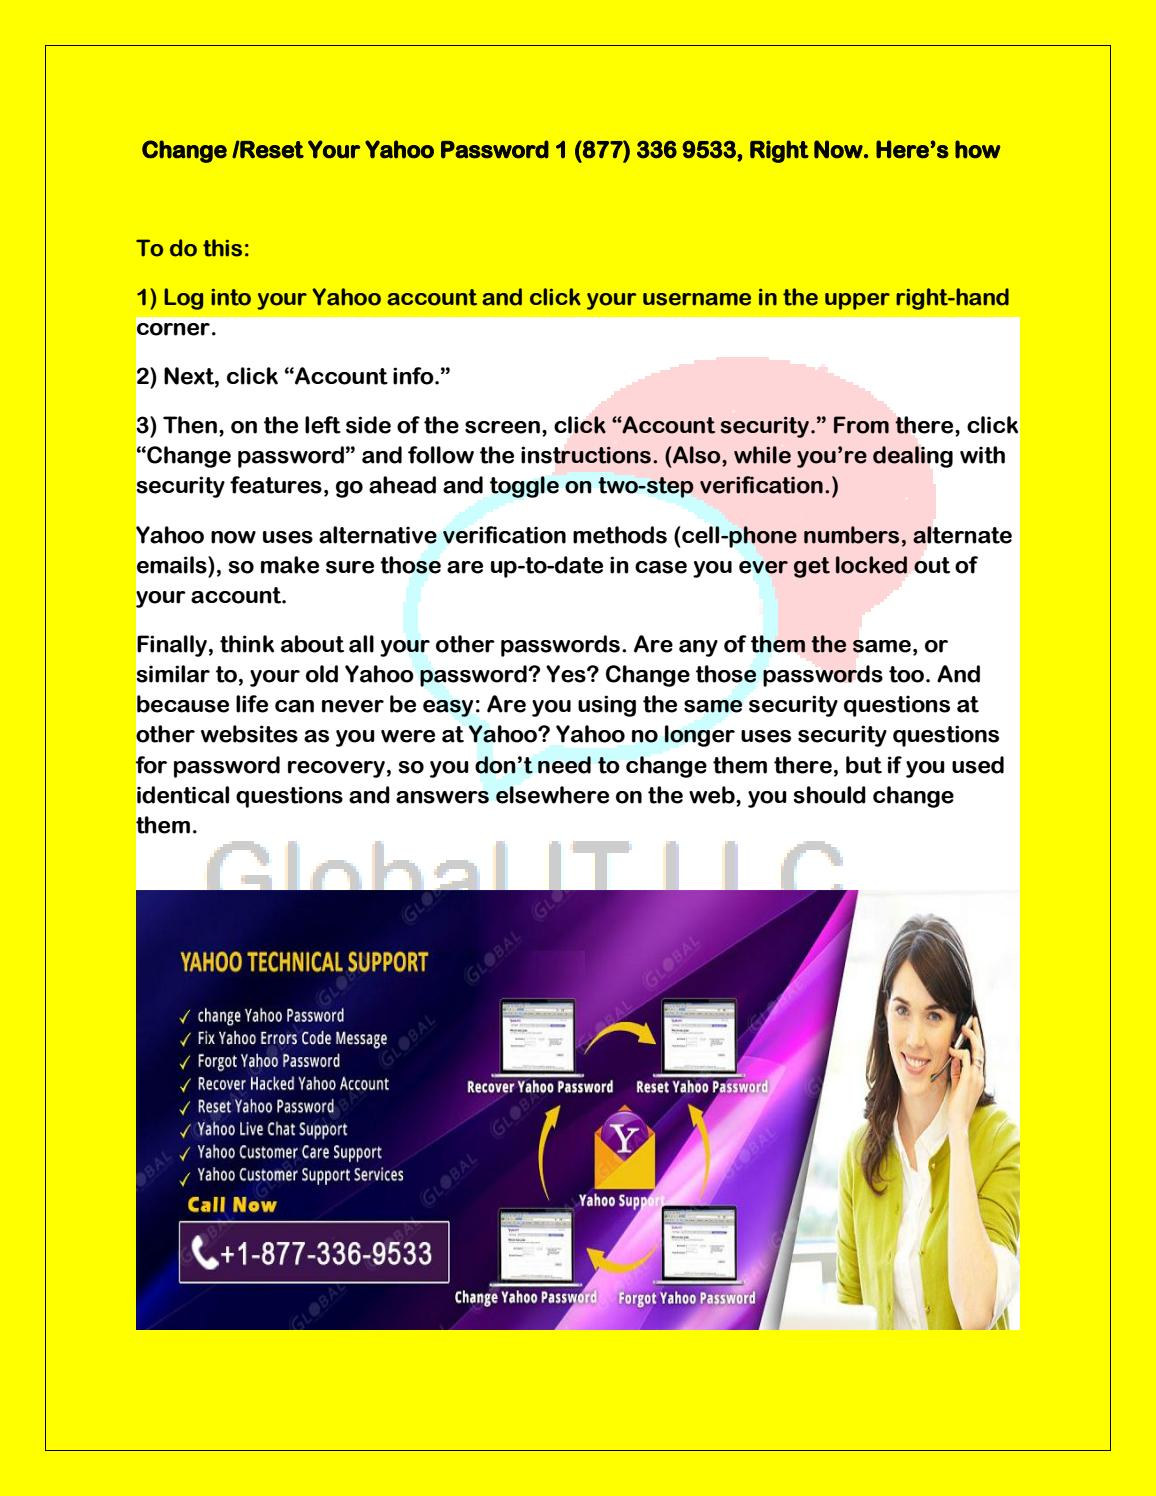 Change / Reset your yahoo password 1 (877) 336 9533, right